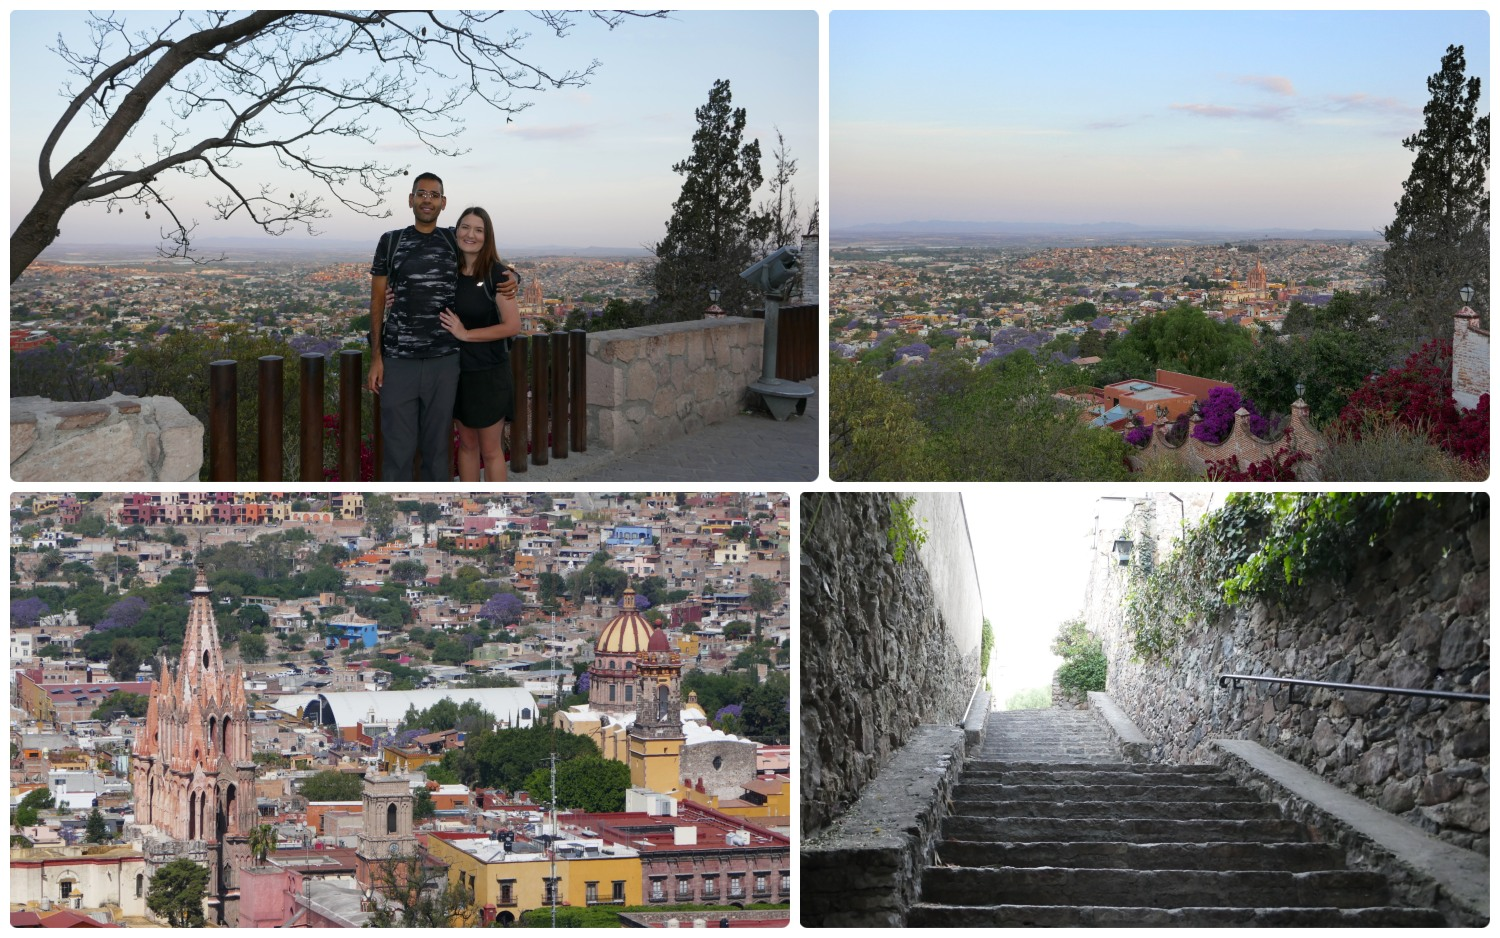 San Miguel de Allende's well known El Mirador is a great spot to see the beautiful views of the Spanish Colonial town. We arrived just after sunrise and were nearly the only people there!